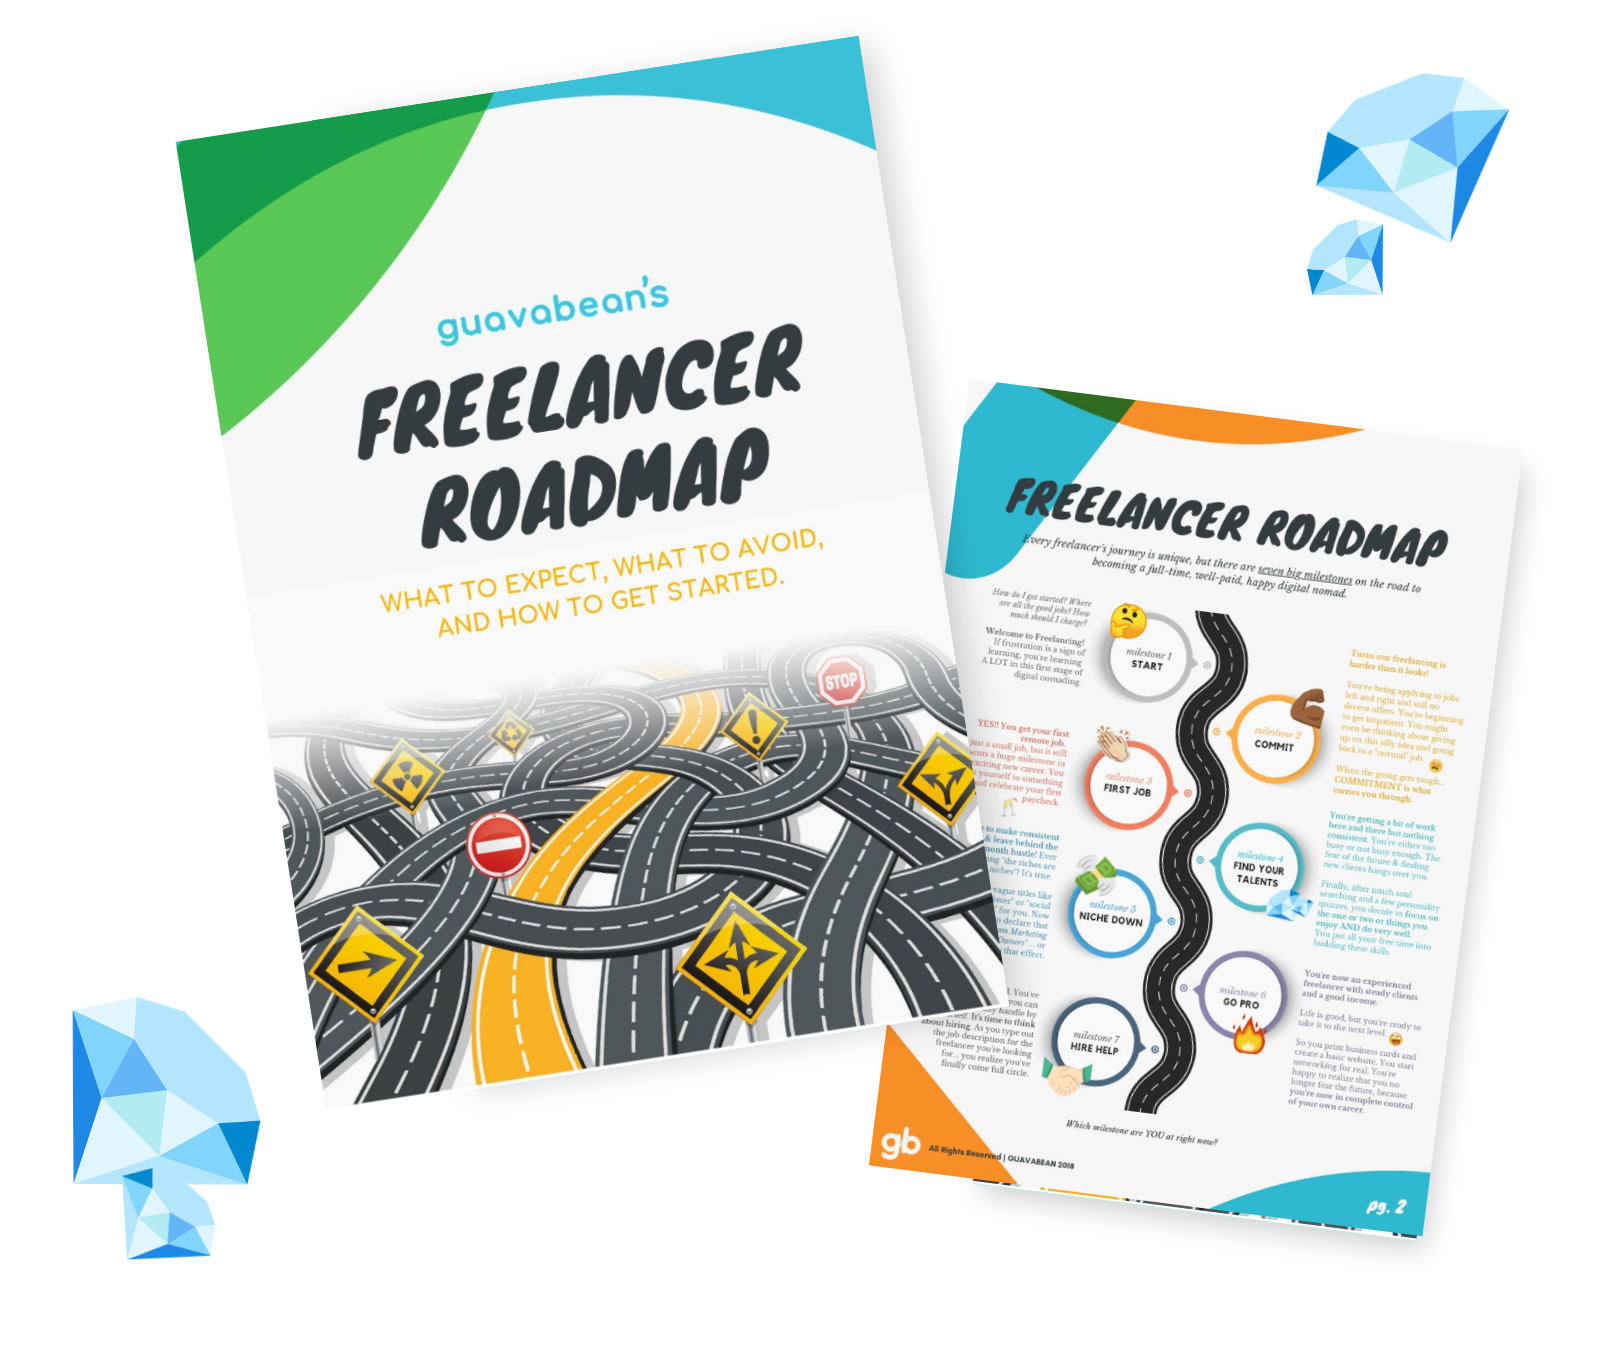 guavabean-freelancer-roadmap